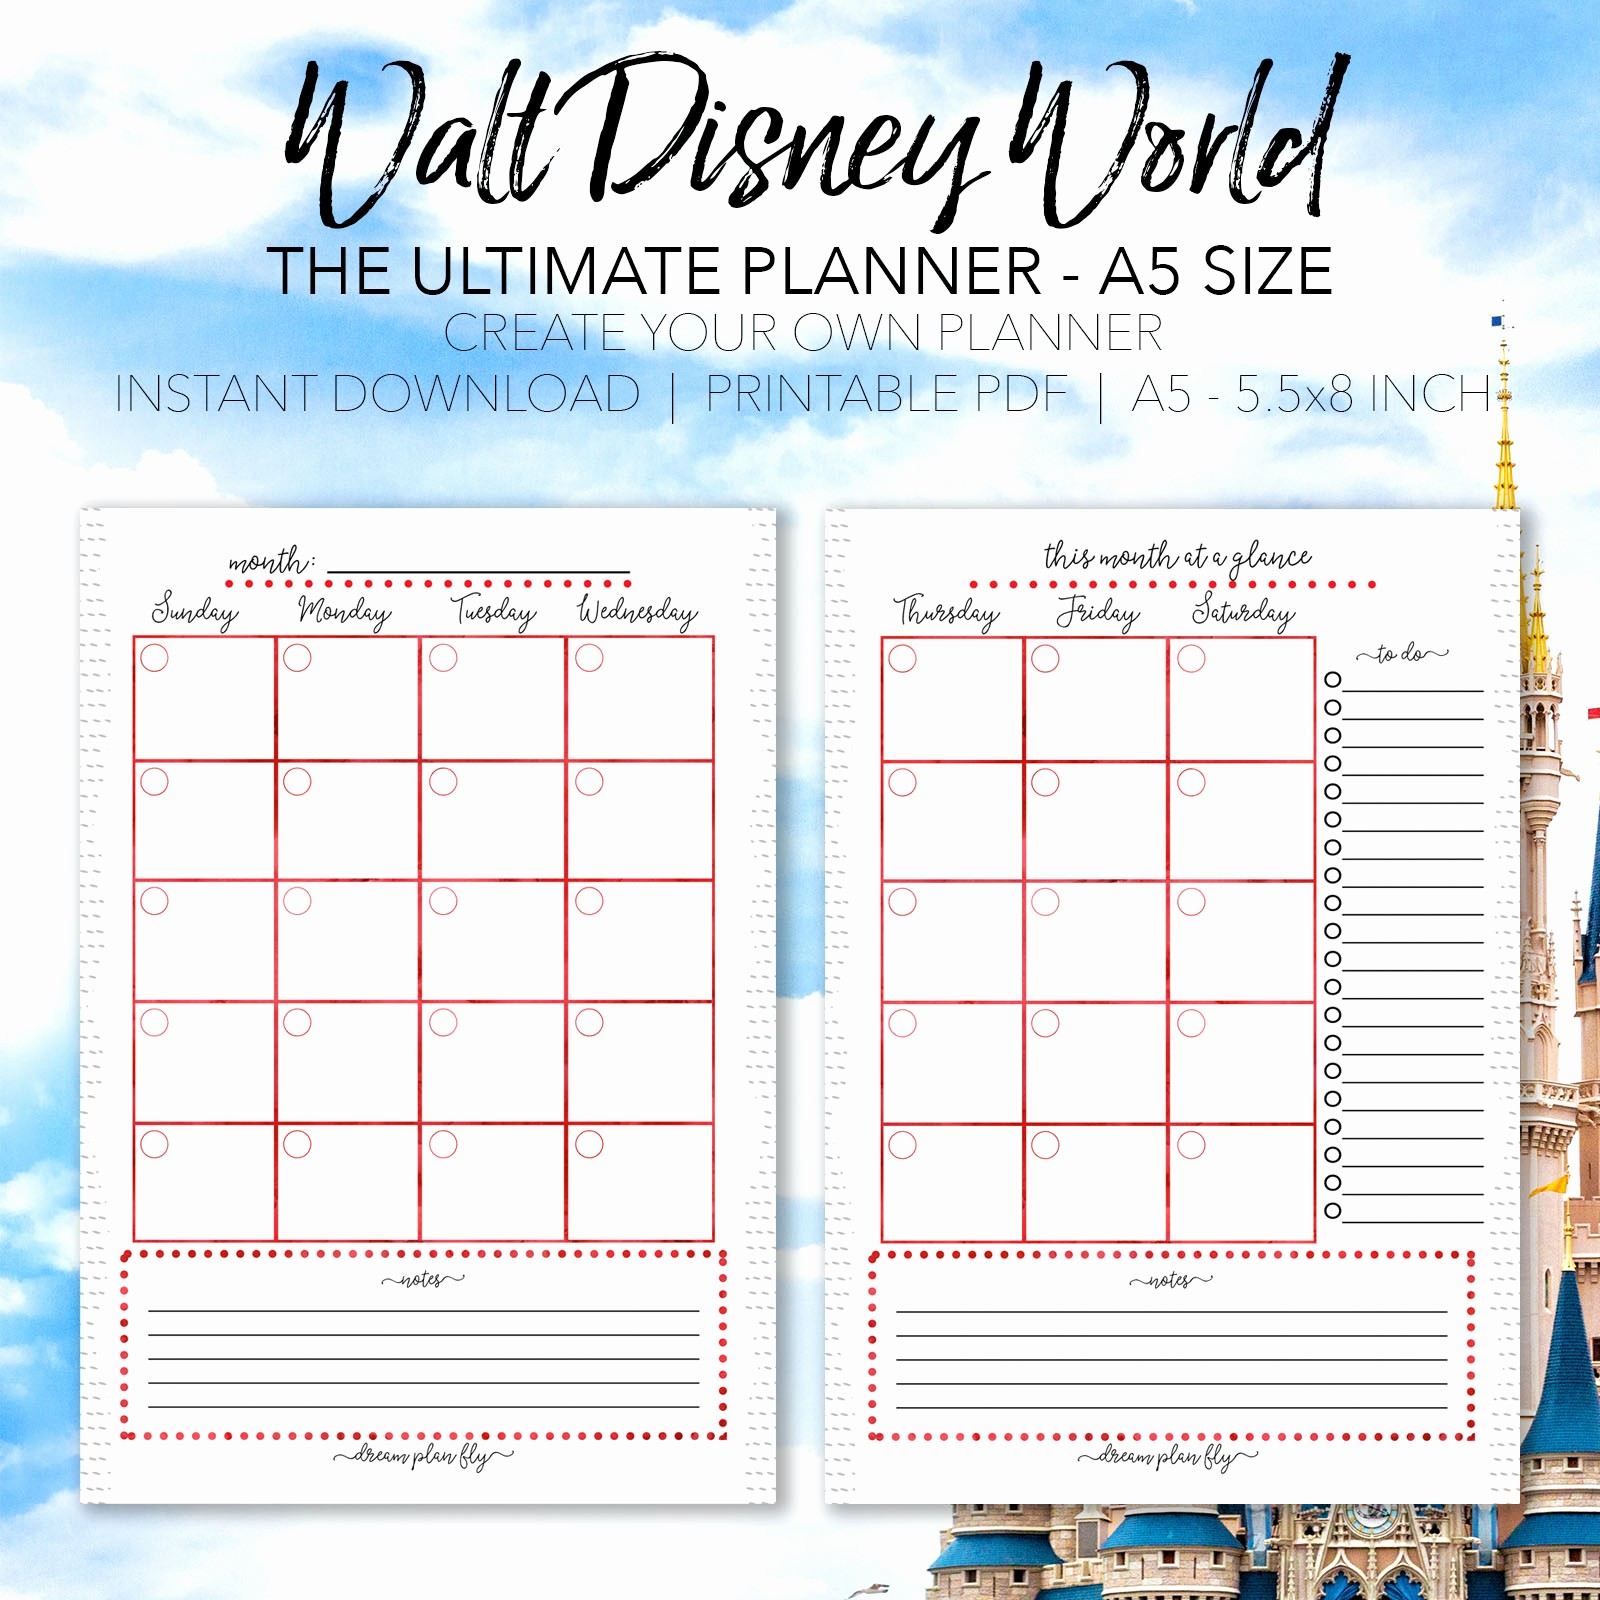 Free Printable Vacation Planner Template Elegant Ultimate Walt Disney World Vacation Planner A5 Size